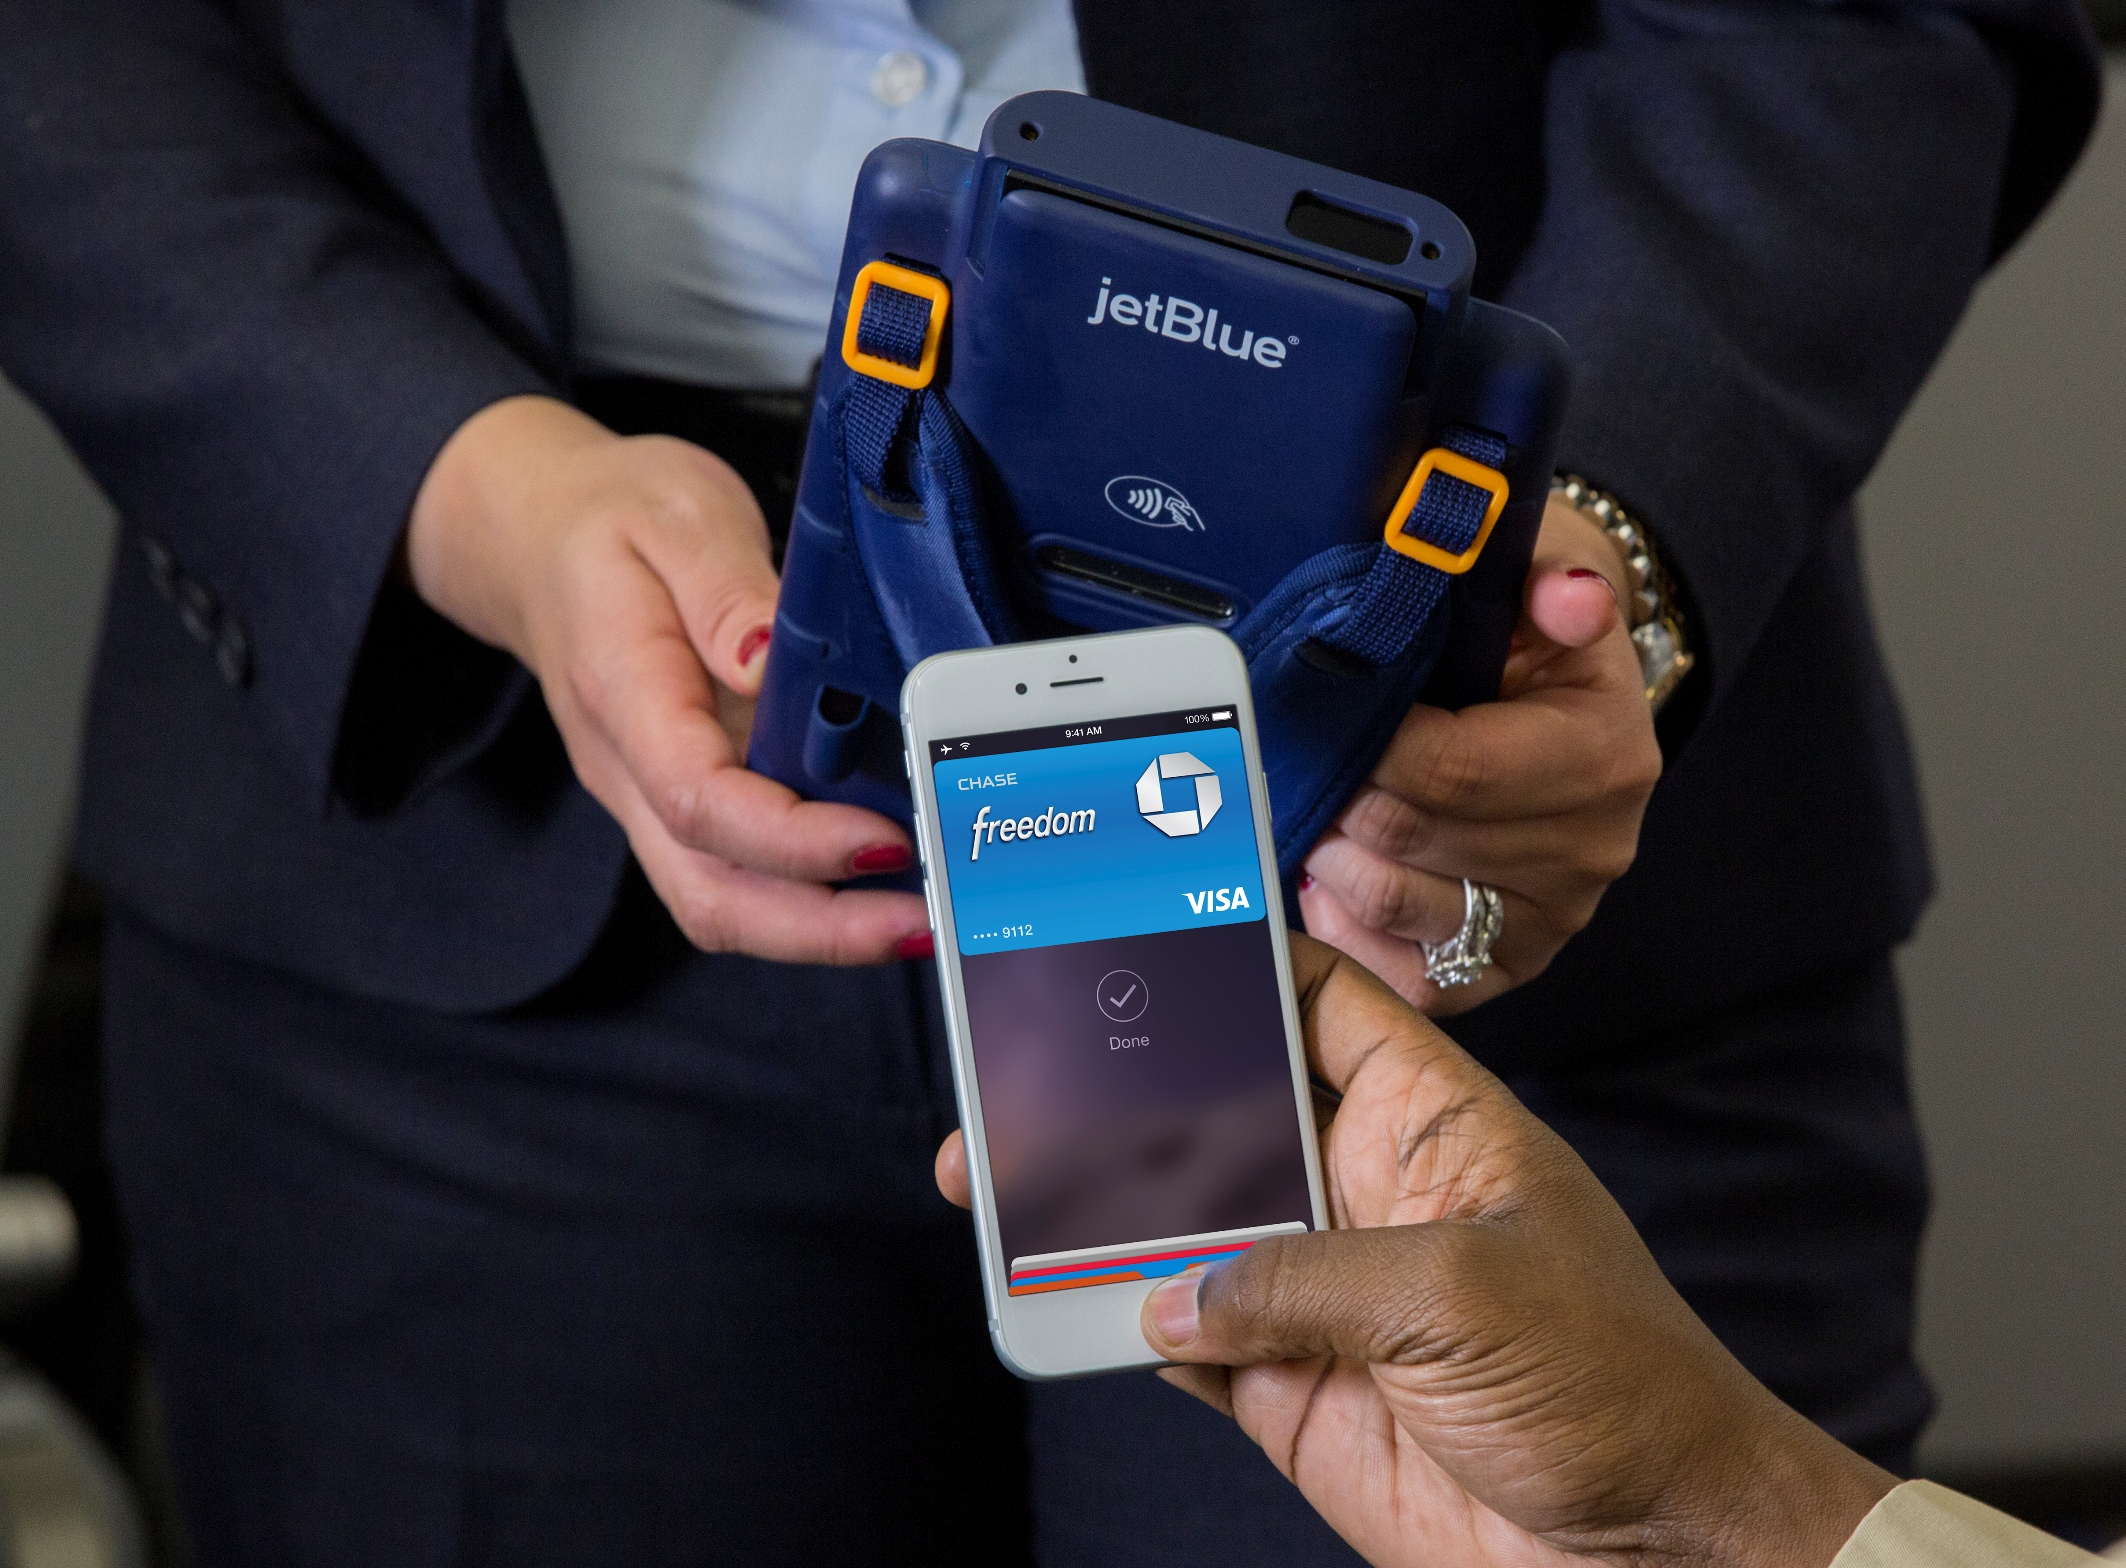 jetblue_apple-pay_airplane-mode-wifi